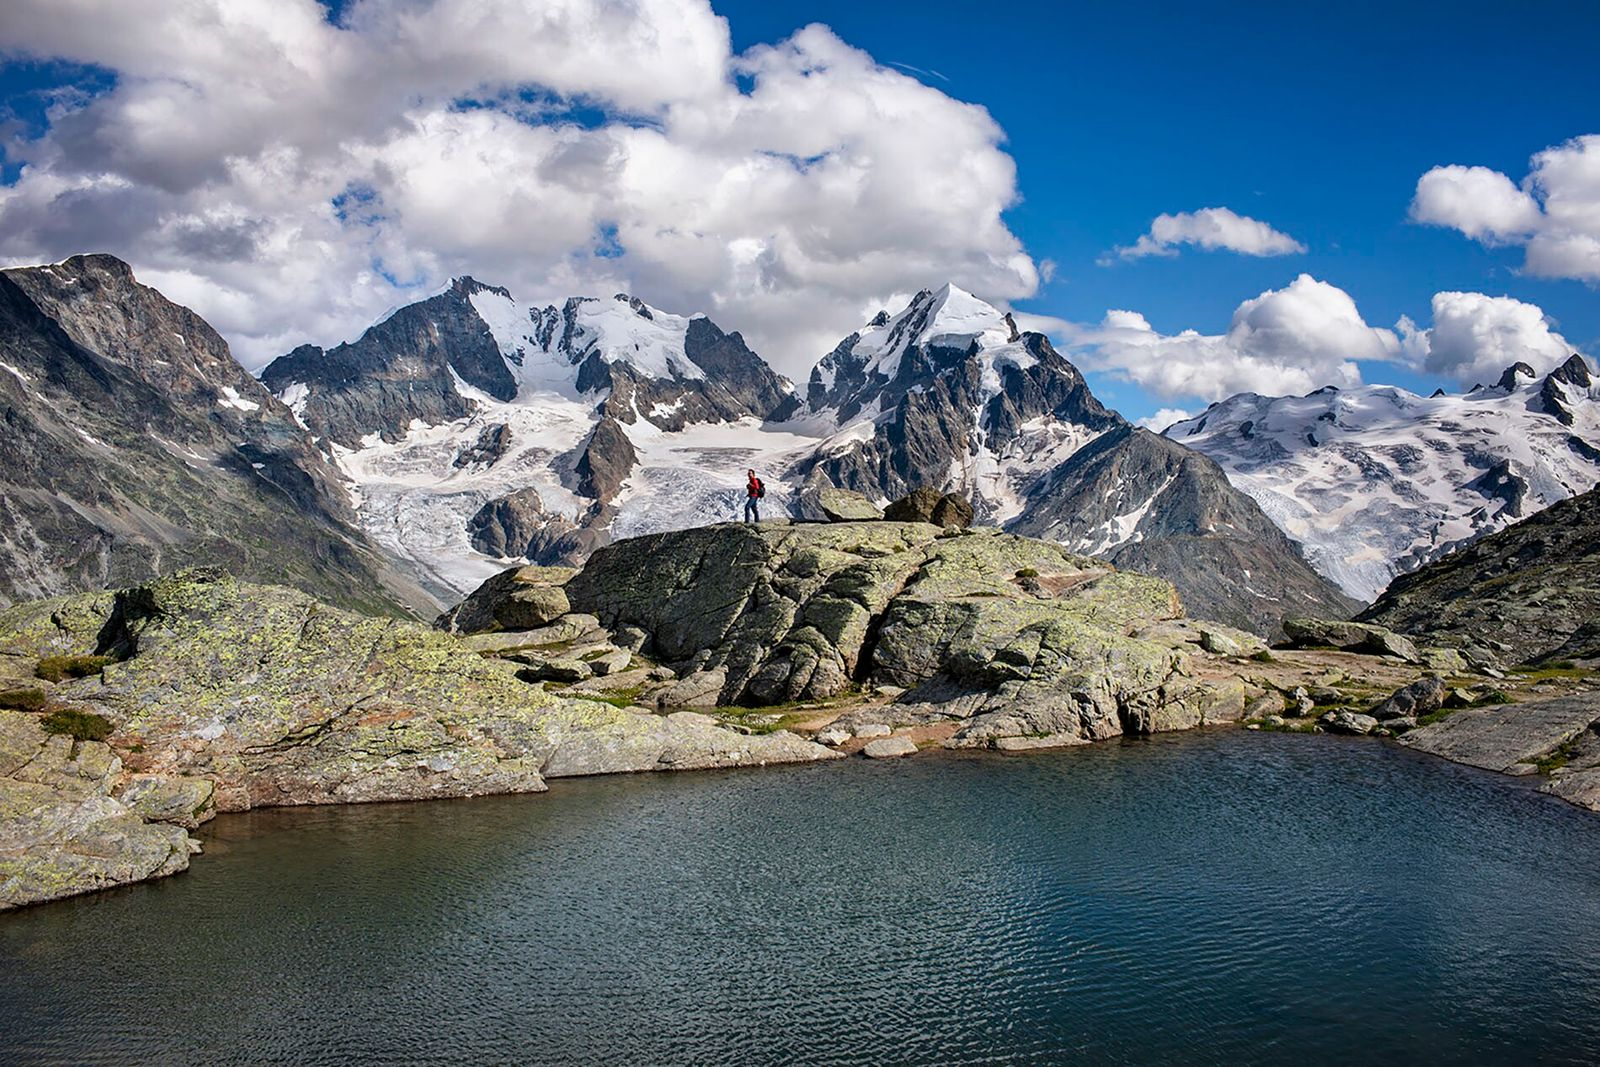 The hike to Fuorcla Surlej from St. Moritz is fairly easy, and walkers can reach this dazzling lake ...